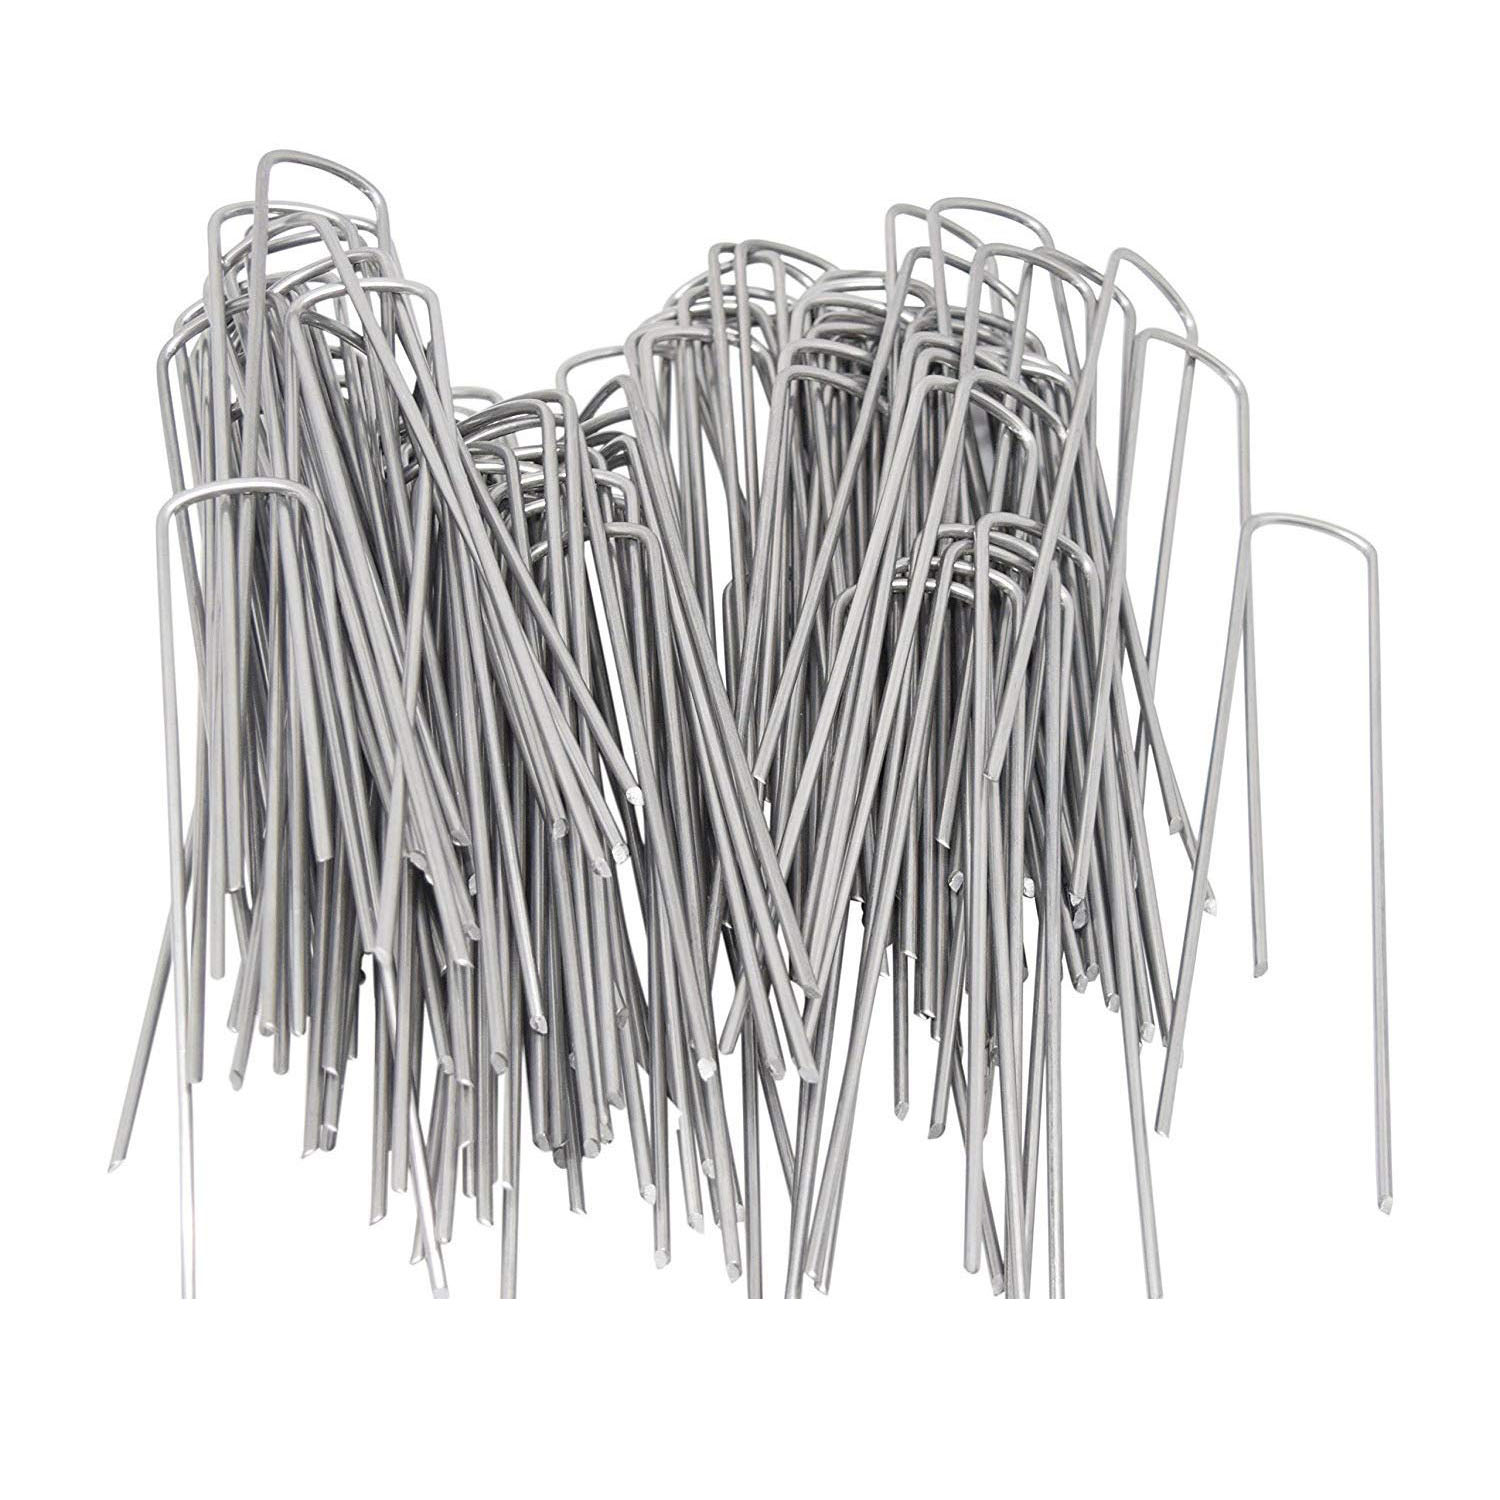 Garden Pegs 100x3.0mm x 6 inch /150mm Galvanized Landscape Ground Staples Rust Resistant Steel Sod Lawn U Pins - Securing Net 10pcs nsi45020at1g nsi45020 sod 123